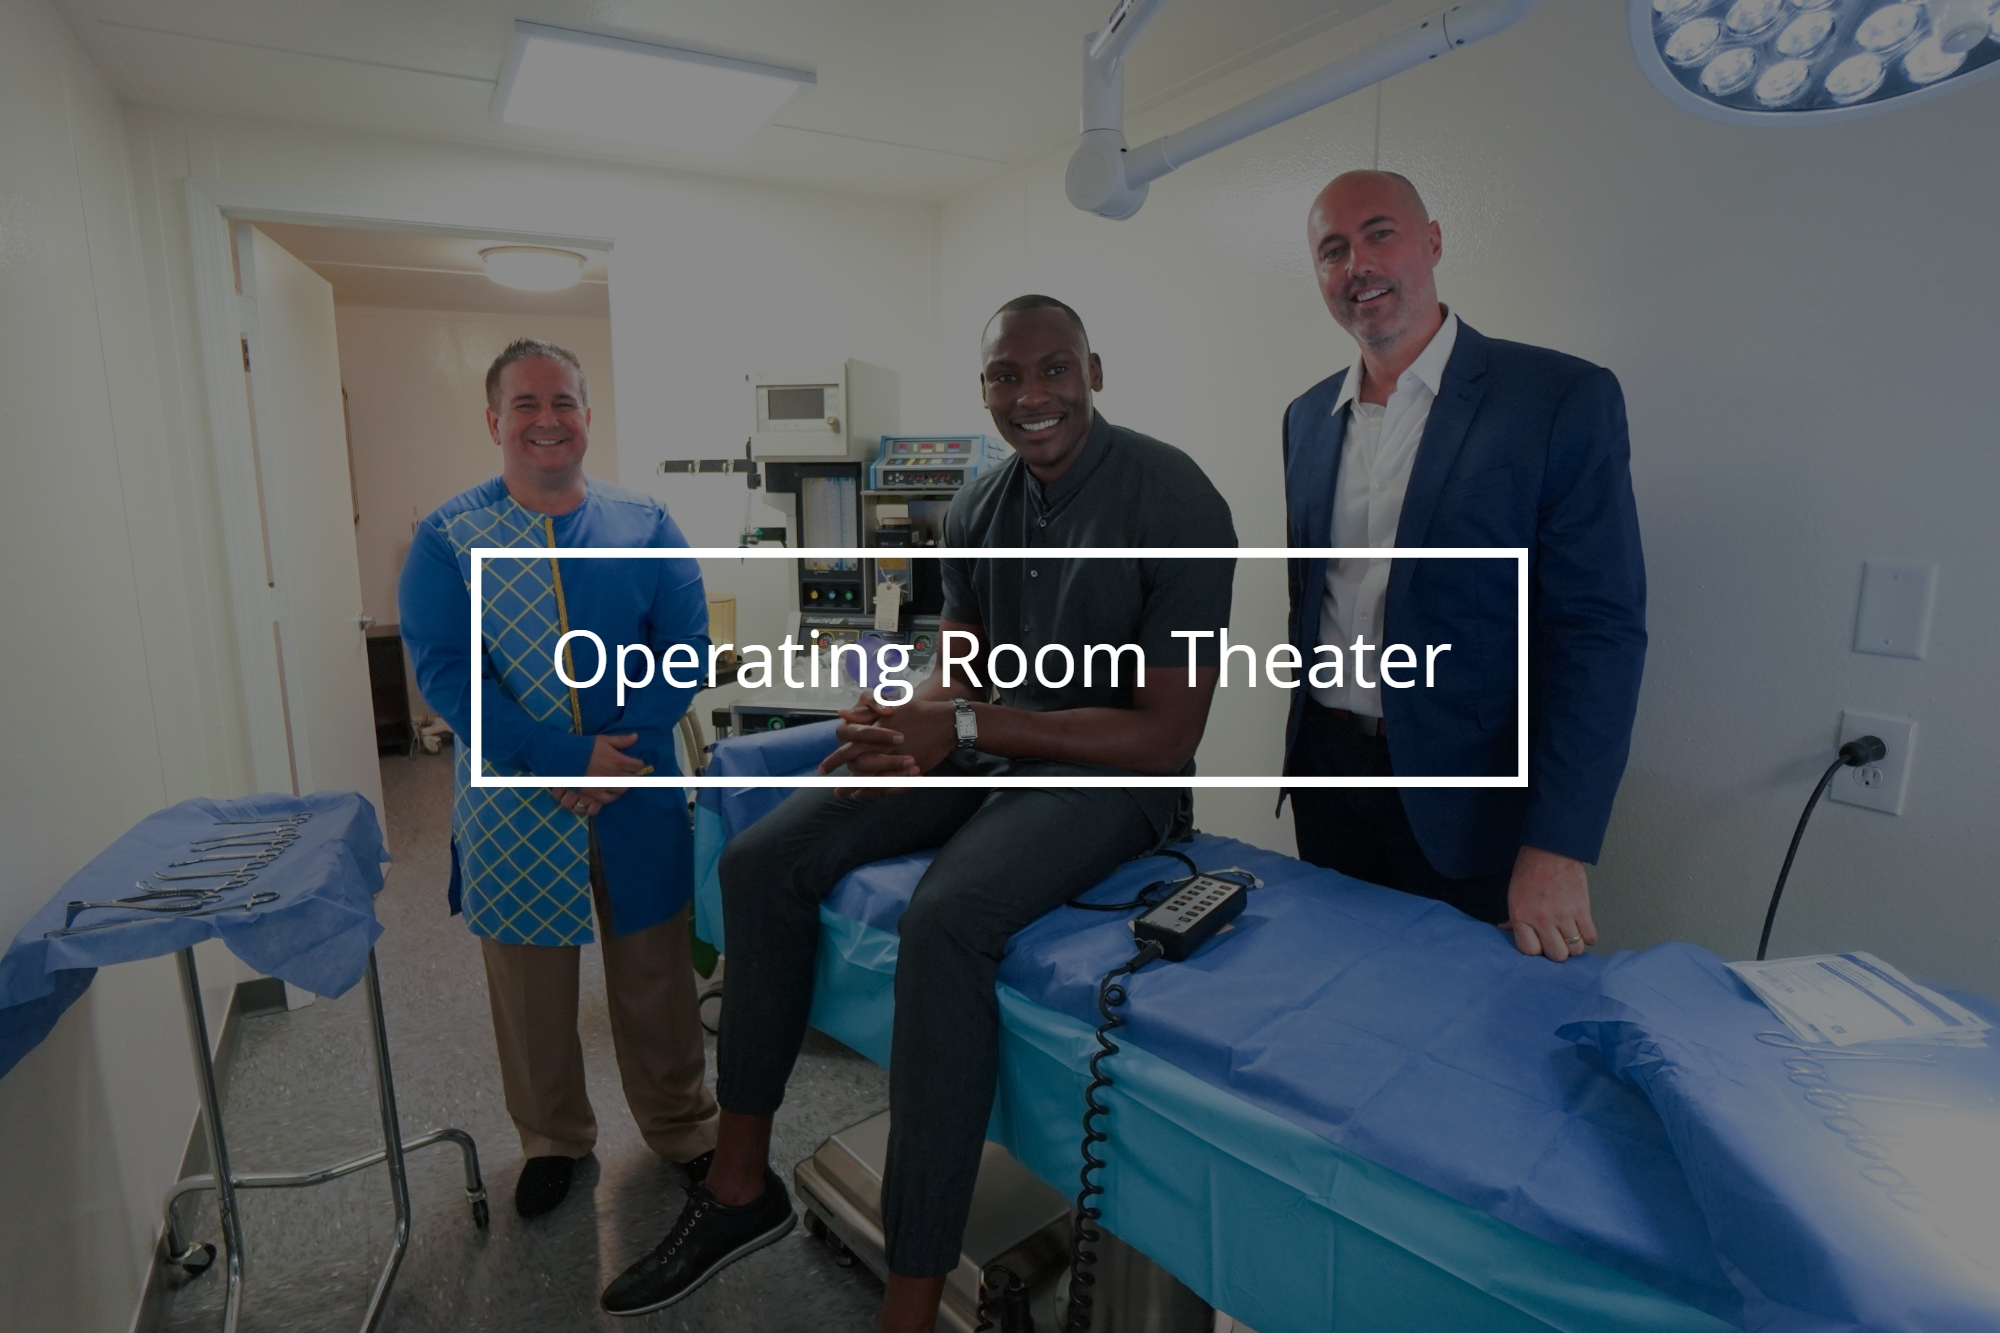 Operating Room Theater